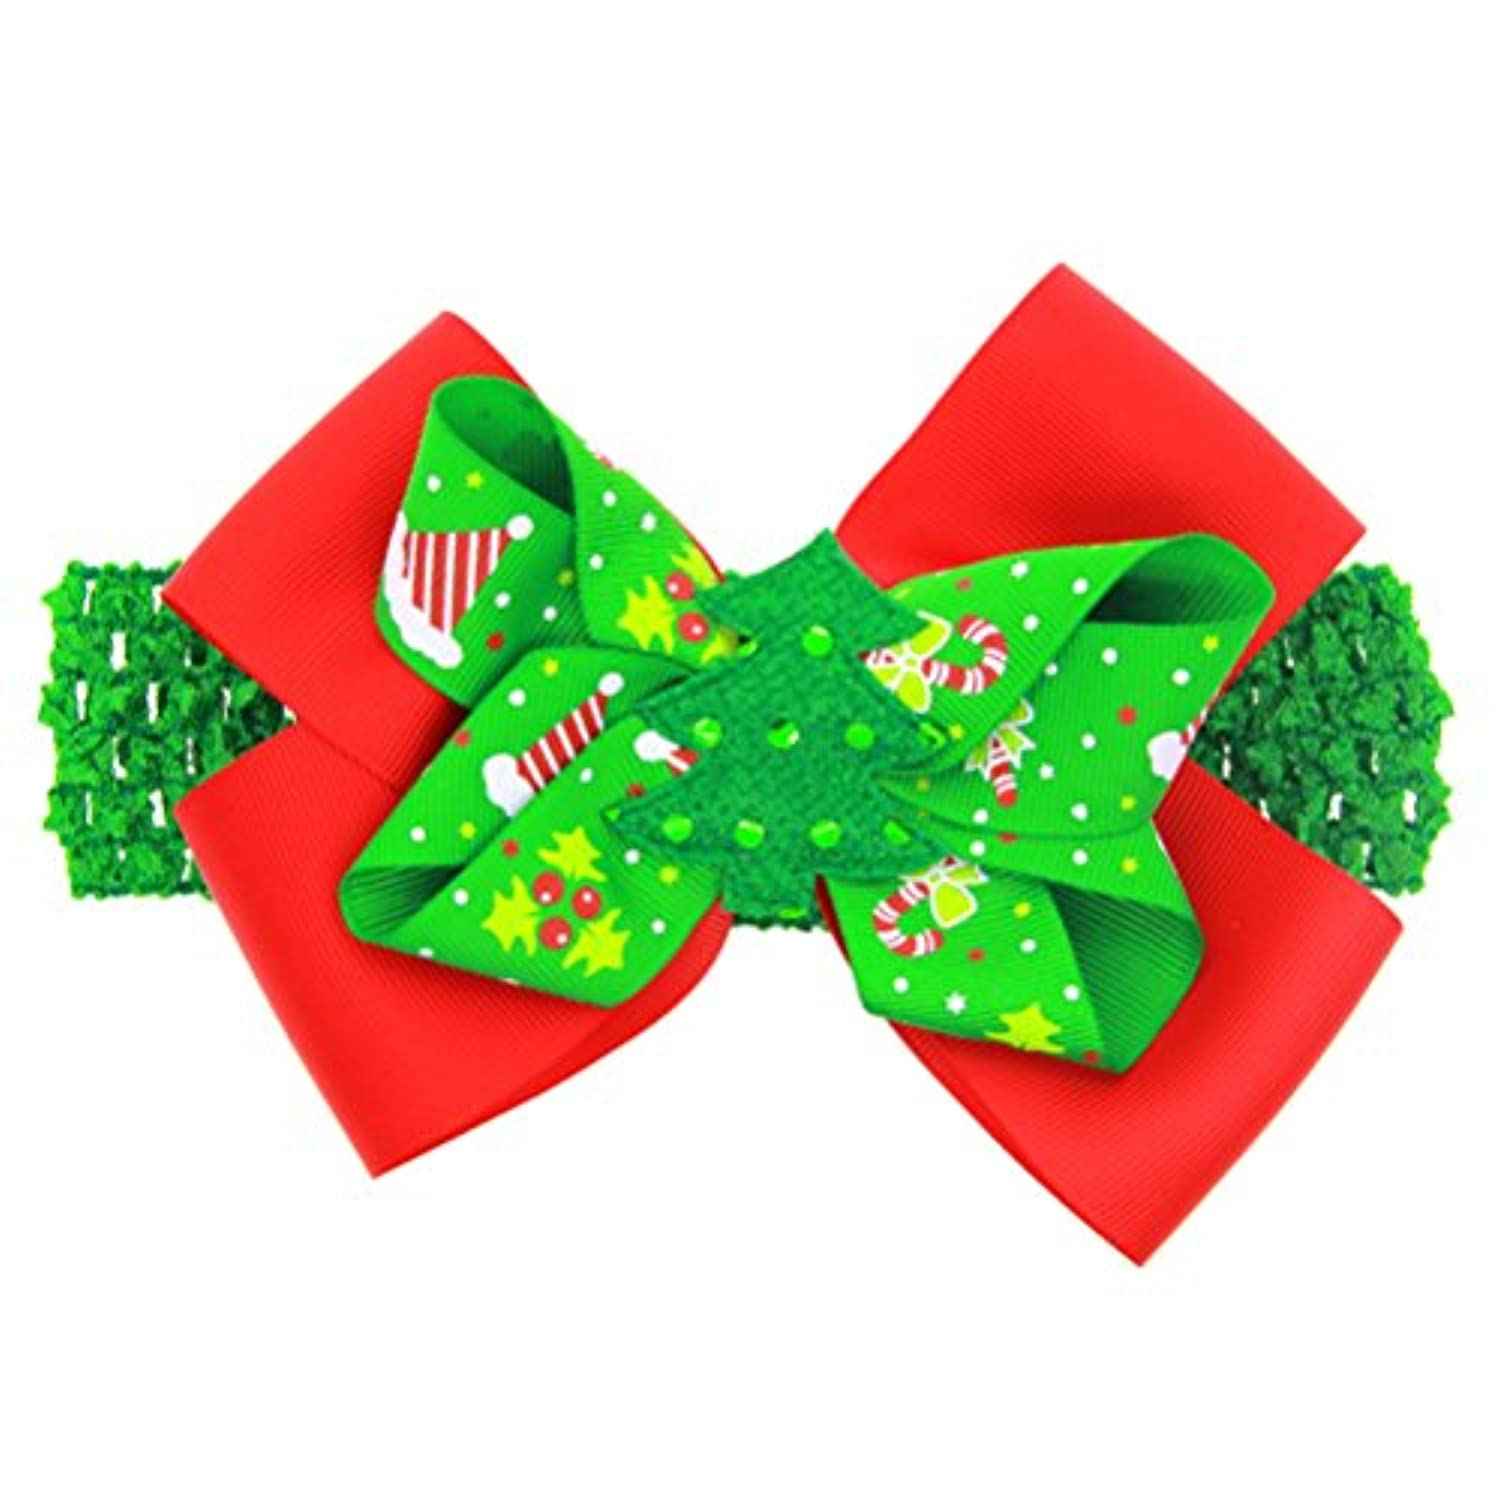 Zhhlaixing ベビー小物 Kids Headband Headdress Hair Clips Christmas Ribbon Bowknot Hairpin Hair Accessories for Girls